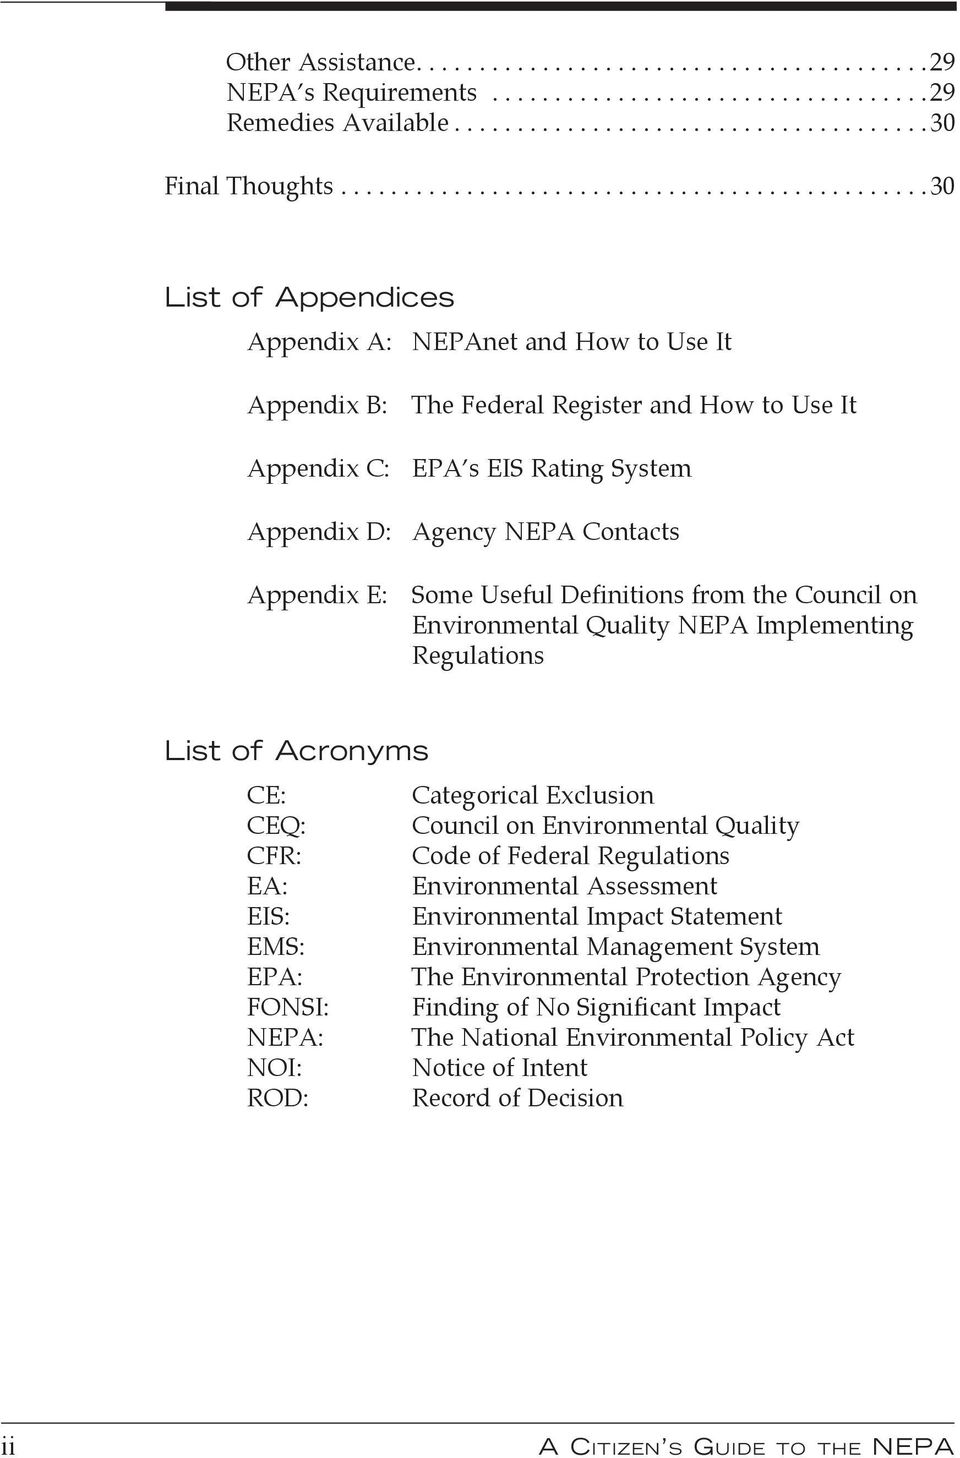 Appendix D: Agency NEPA Contacts Appendix E: Some Useful Definitions from the Council on Environmental Quality NEPA Implementing Regulations List of Acronyms CE: Categorical Exclusion CEQ: Council on